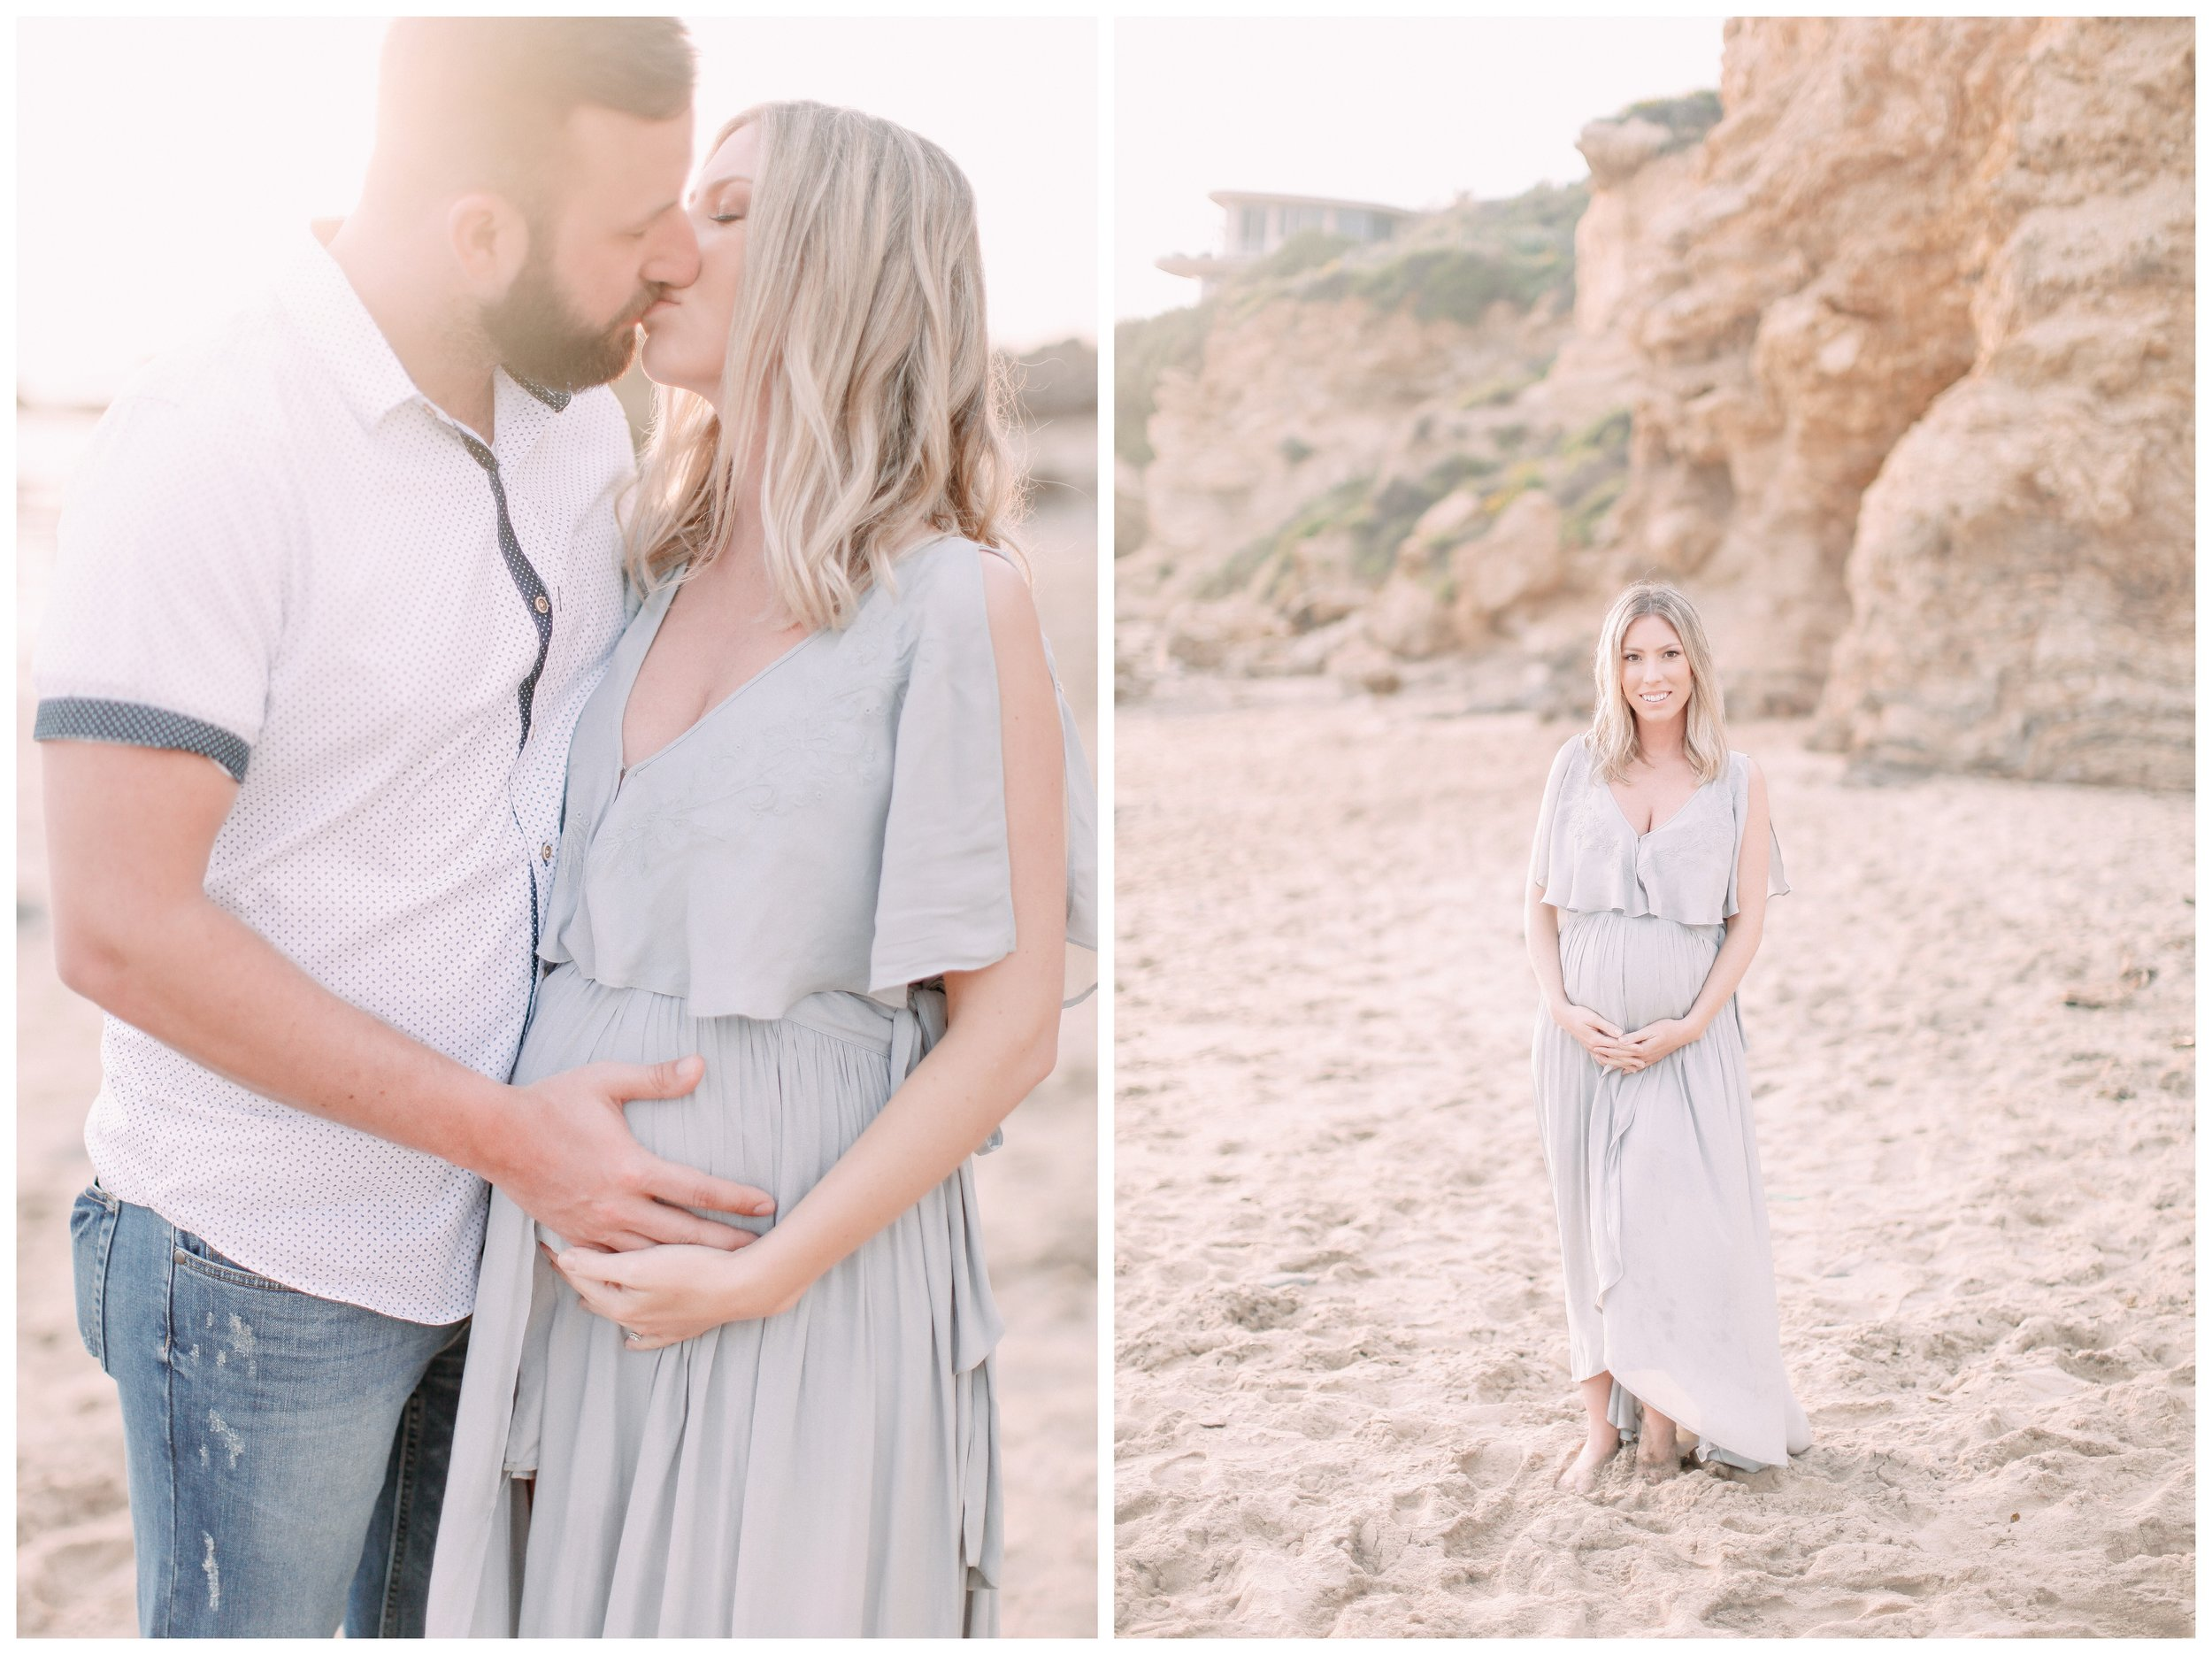 Orange_county_maternity_photographer_cori_kleckner_photography_0062.jpg